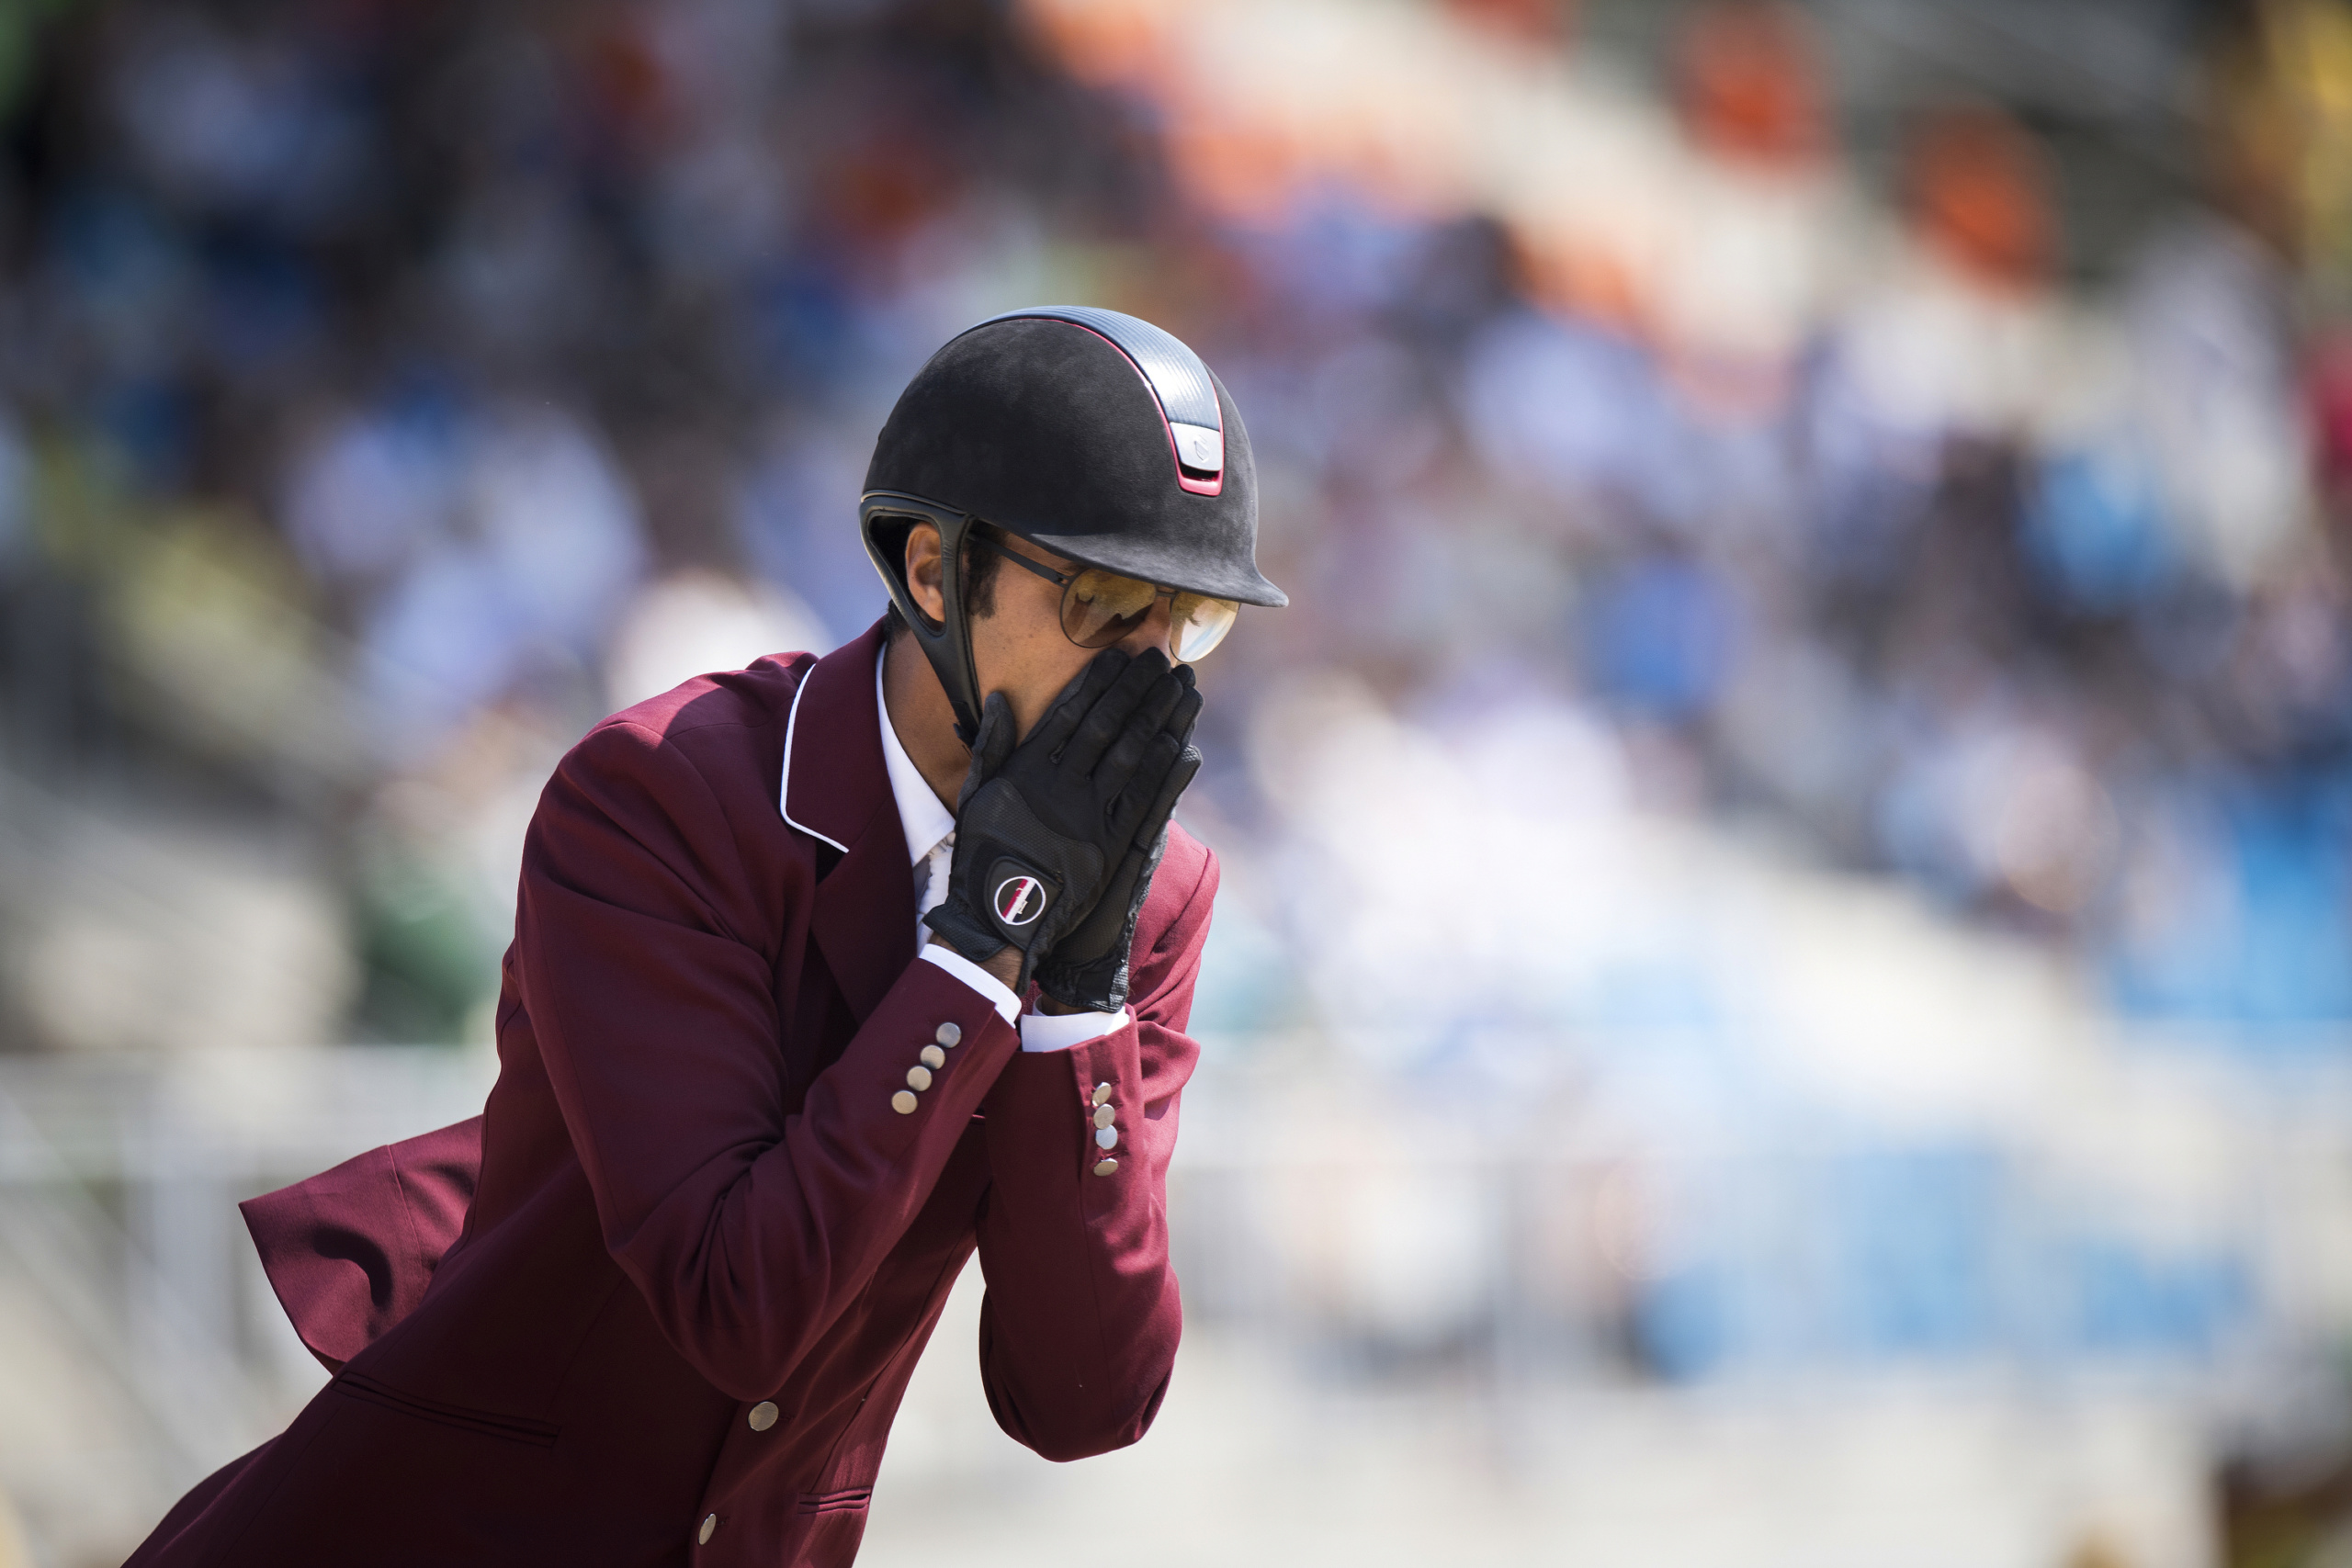 EQUESTRIANCampaign realized for the International Federation for Equestrian Sports FEI.Olympic Games Rio 2016JUMPING INDIVIDUAL QAT AL THANI Sheikh Ali